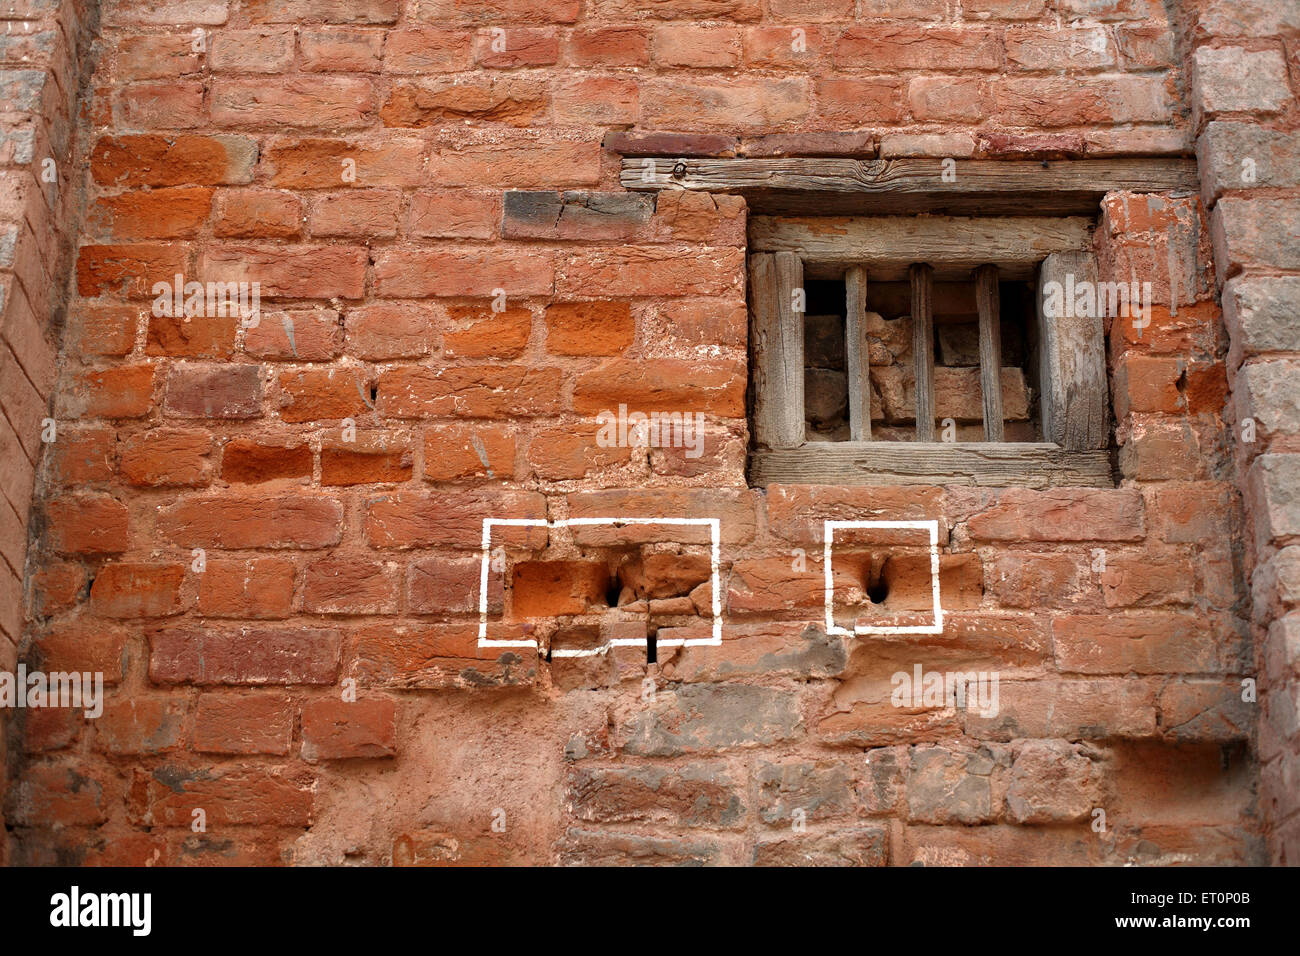 Bullet marks visible on preserved wall at Jalianwala Bagh ; Amritsar ; Punjab ; India - Stock Image